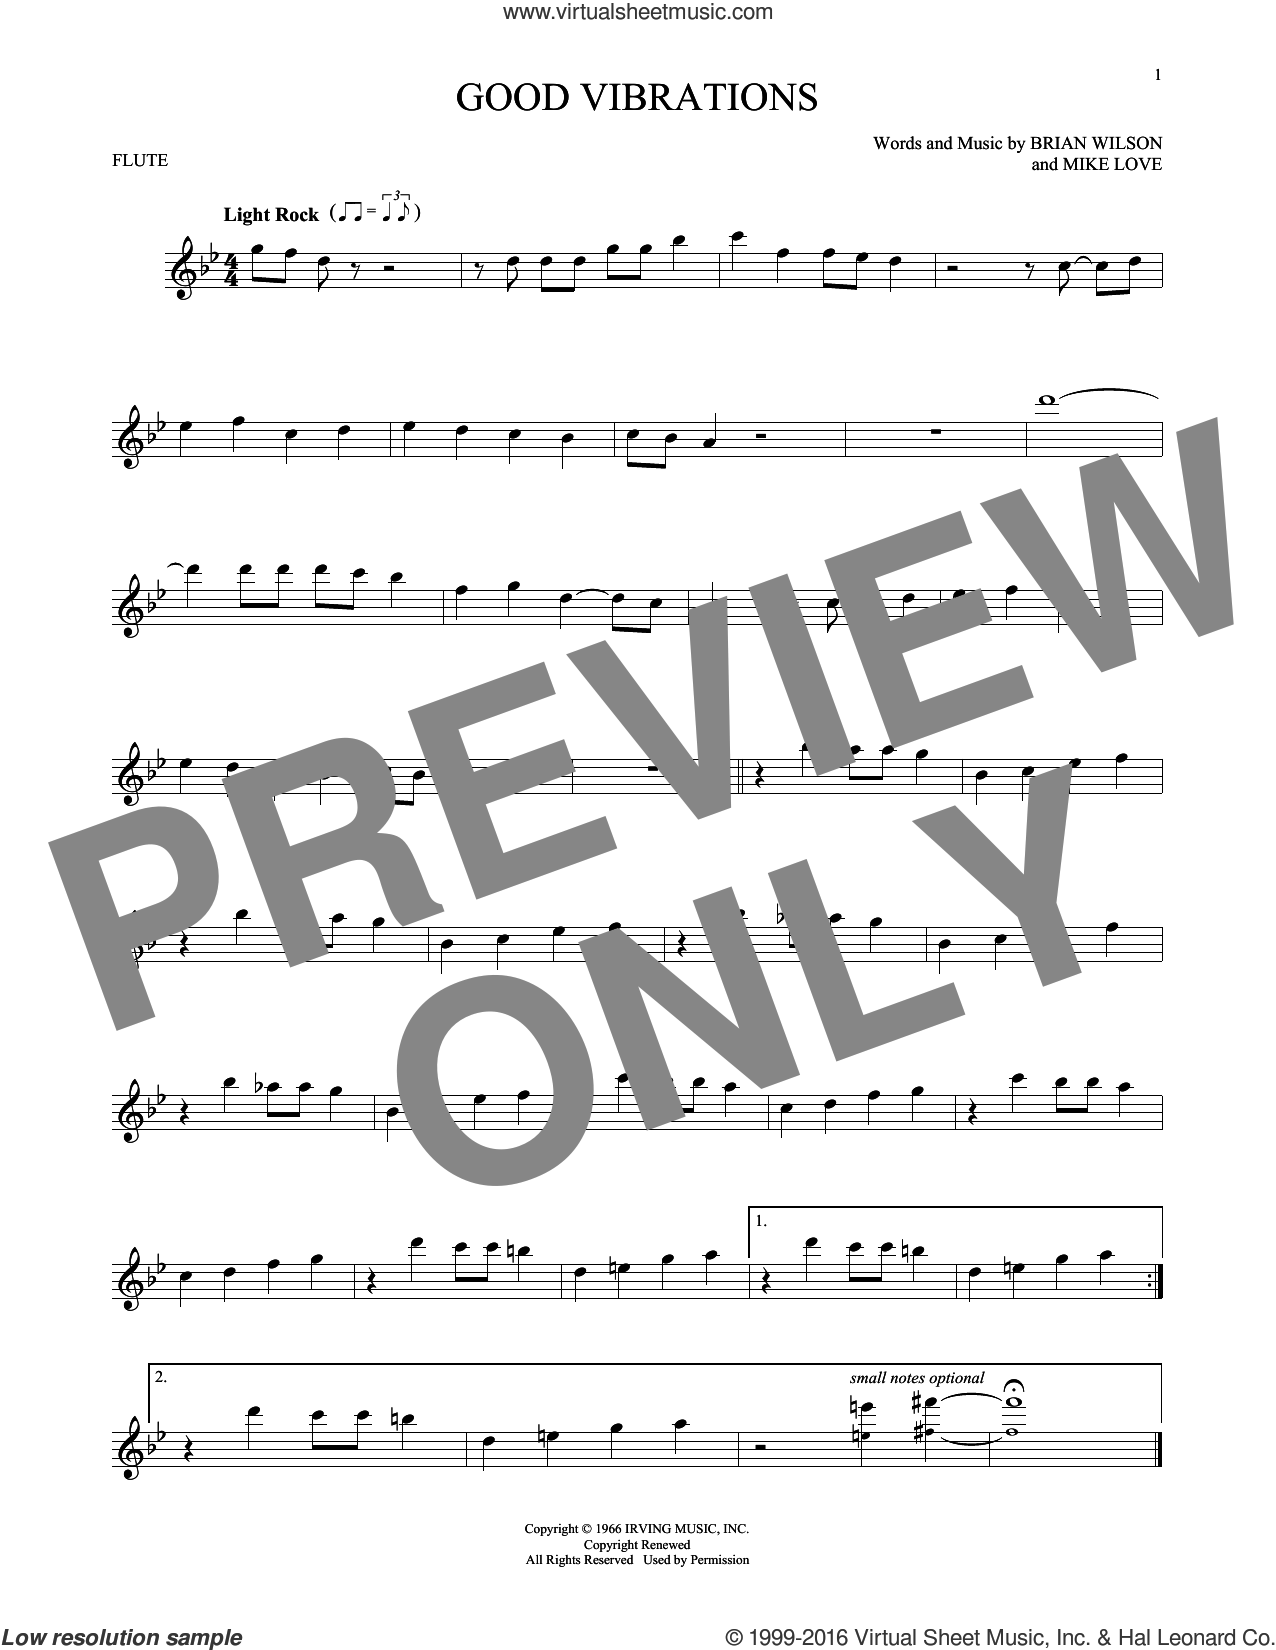 Good Vibrations sheet music for flute solo by The Beach Boys, Brian Wilson and Mike Love, intermediate skill level